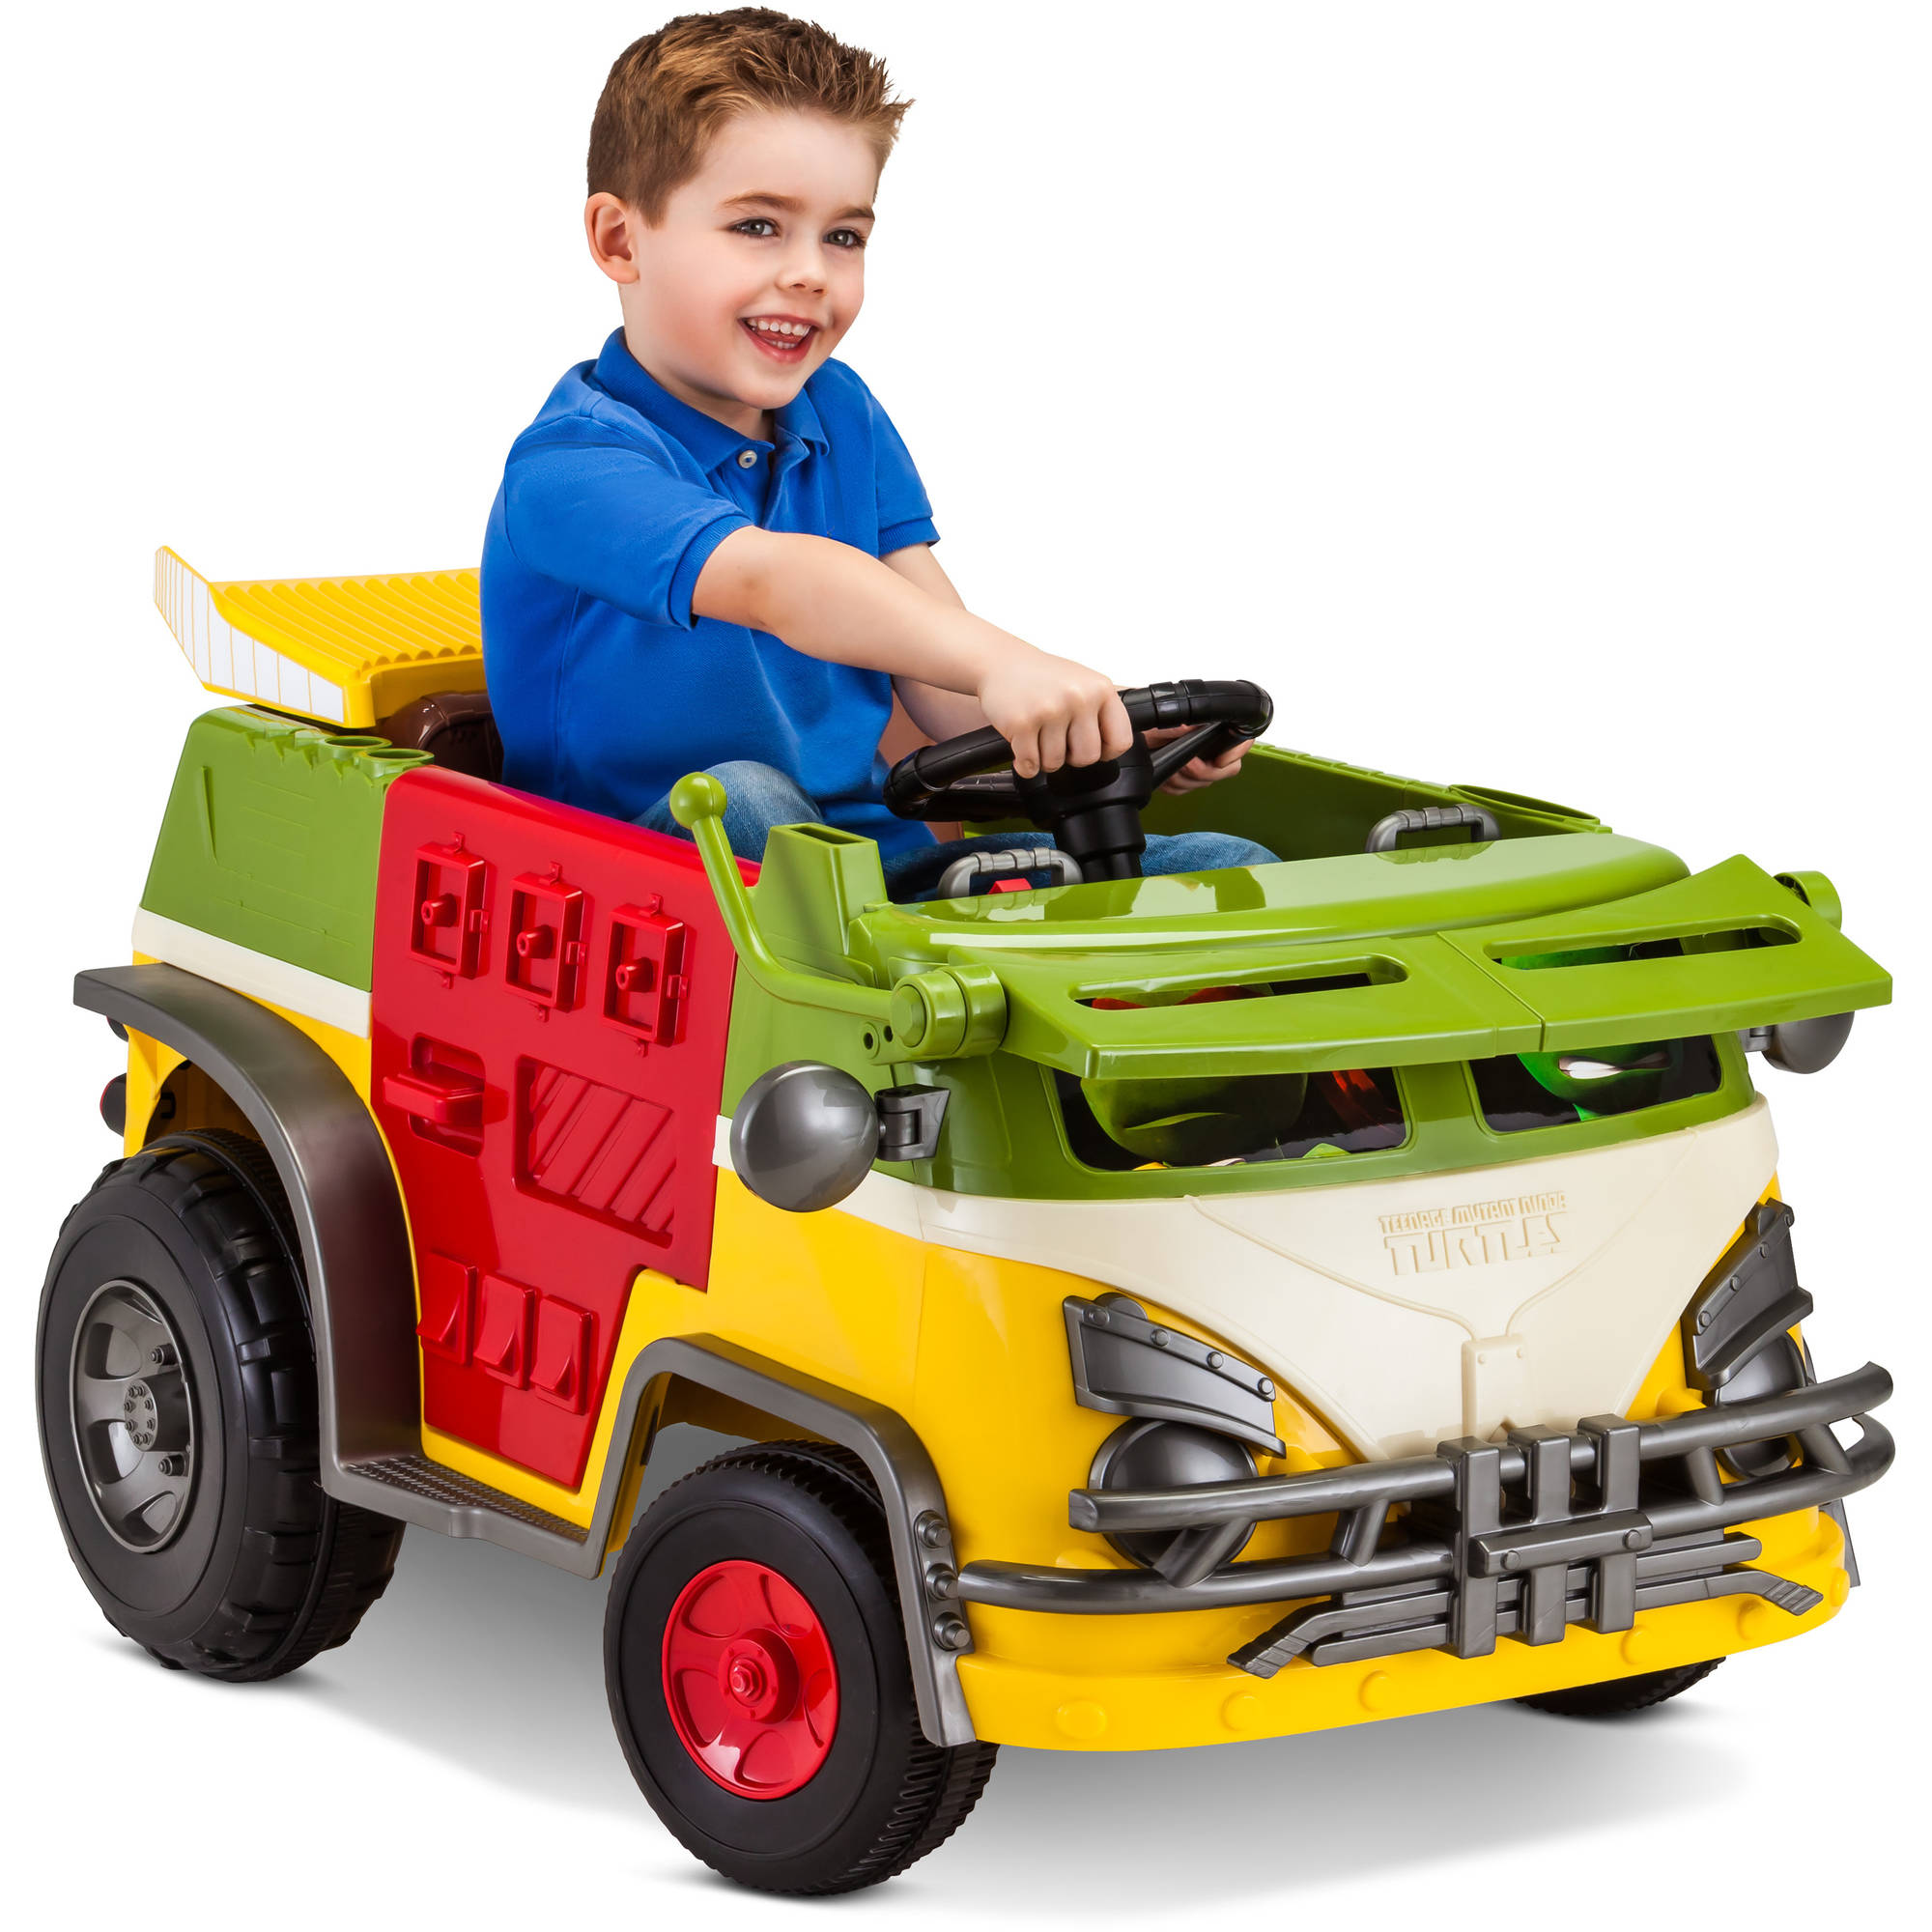 Kid Trax Teenage Mutant Ninja Turtles 6V Battery Powered Ride-On